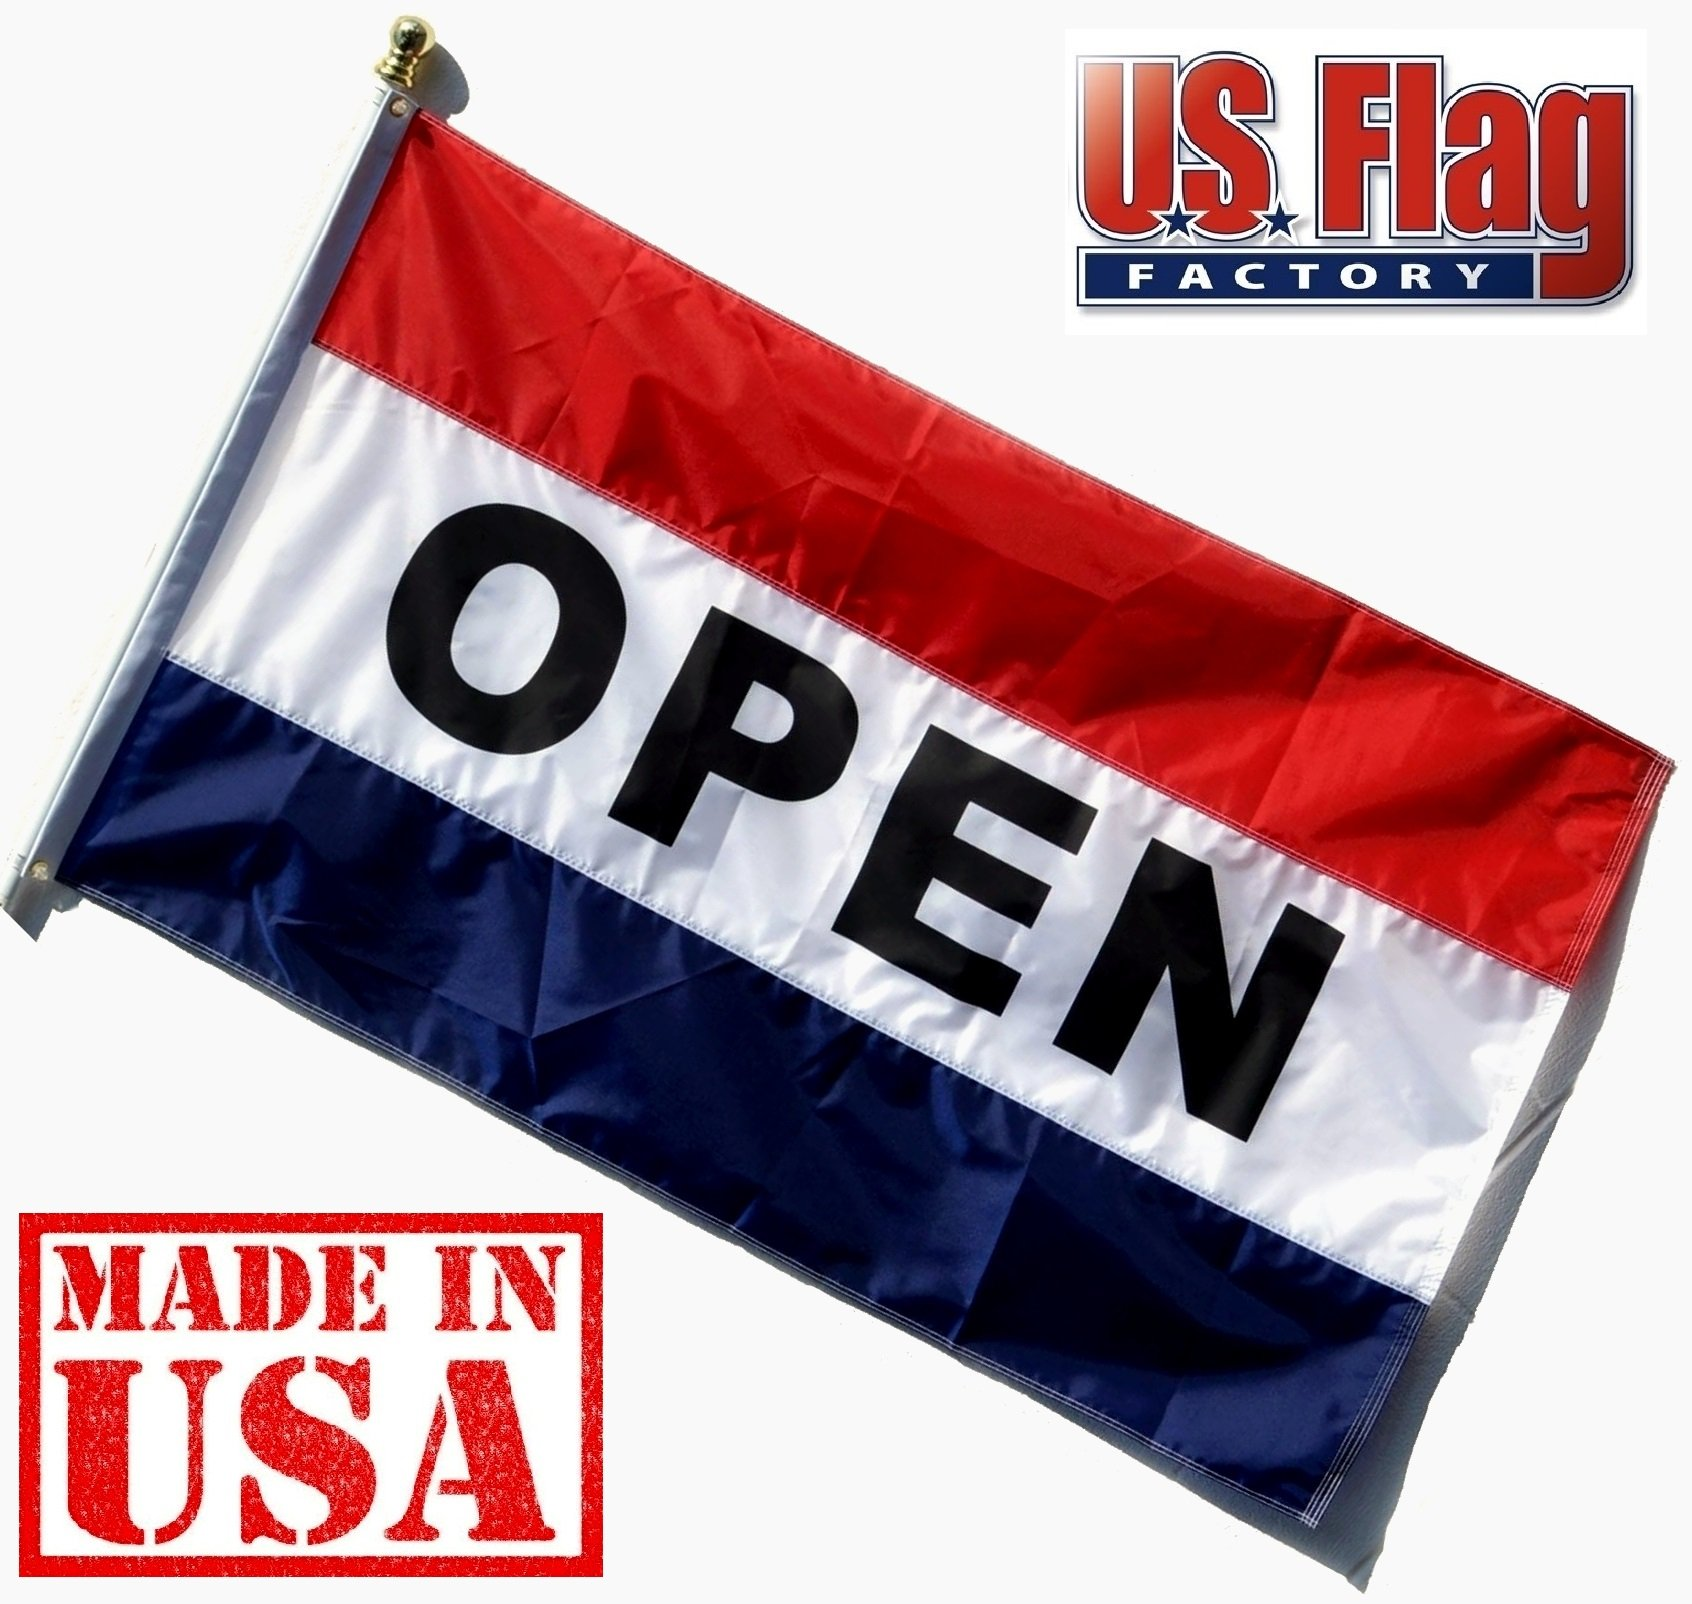 US Flag Factory - 3'x5' Nylon OPEN Flag (Sewn Stripes) Outdoor Message Flag - Commercial Grade Business OPEN Flag - UV Fade Resistant - Made in USA - Premium Quality (OPEN)